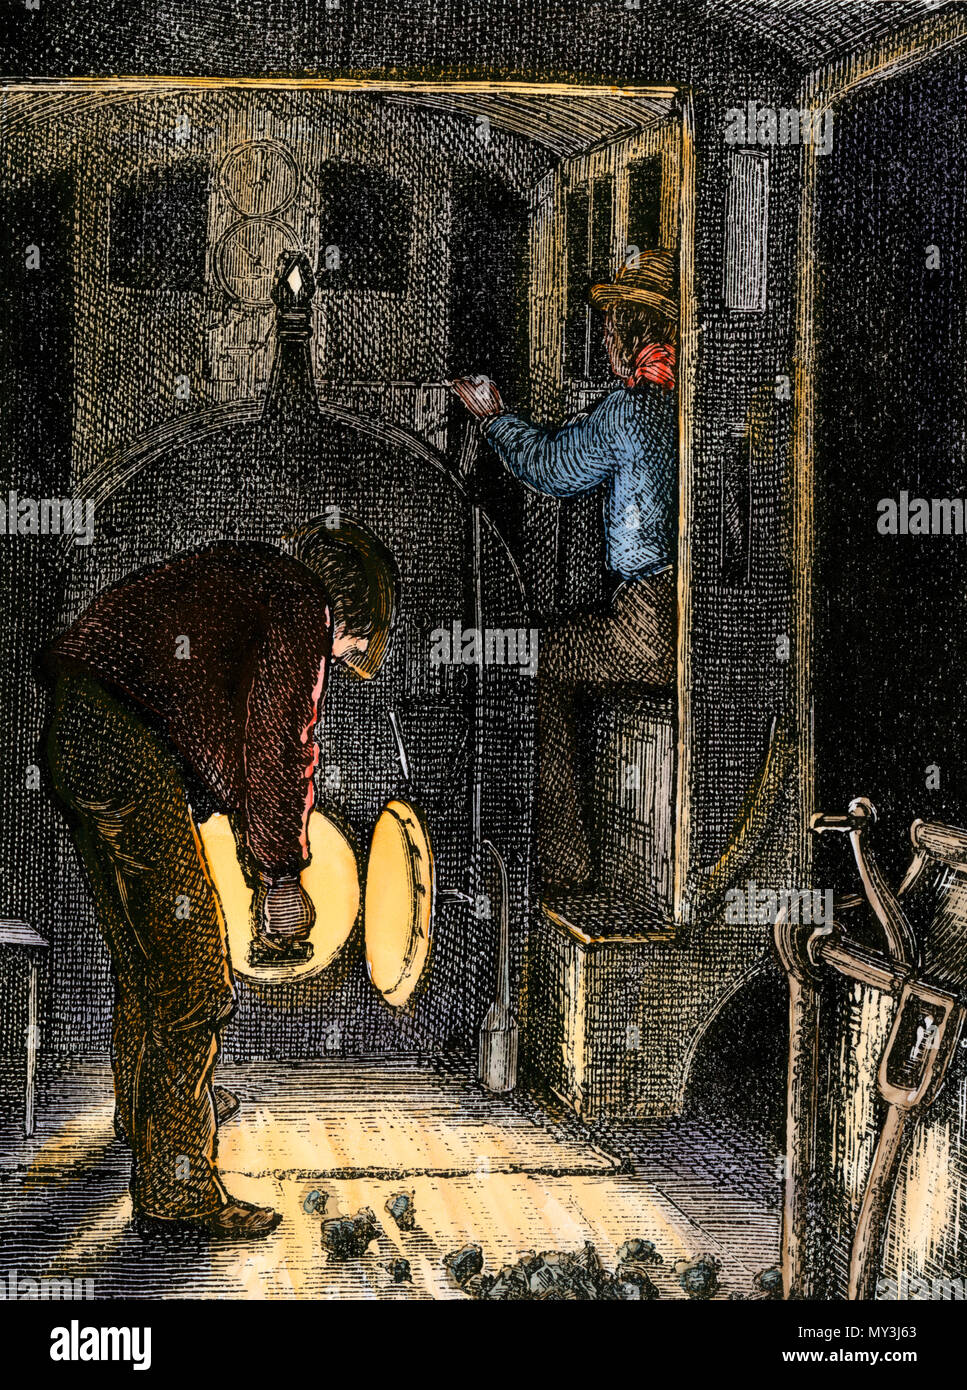 Shoveling coal in the cab of a steam locomotive at night, 1800s. Hand-colored woodcut - Stock Image